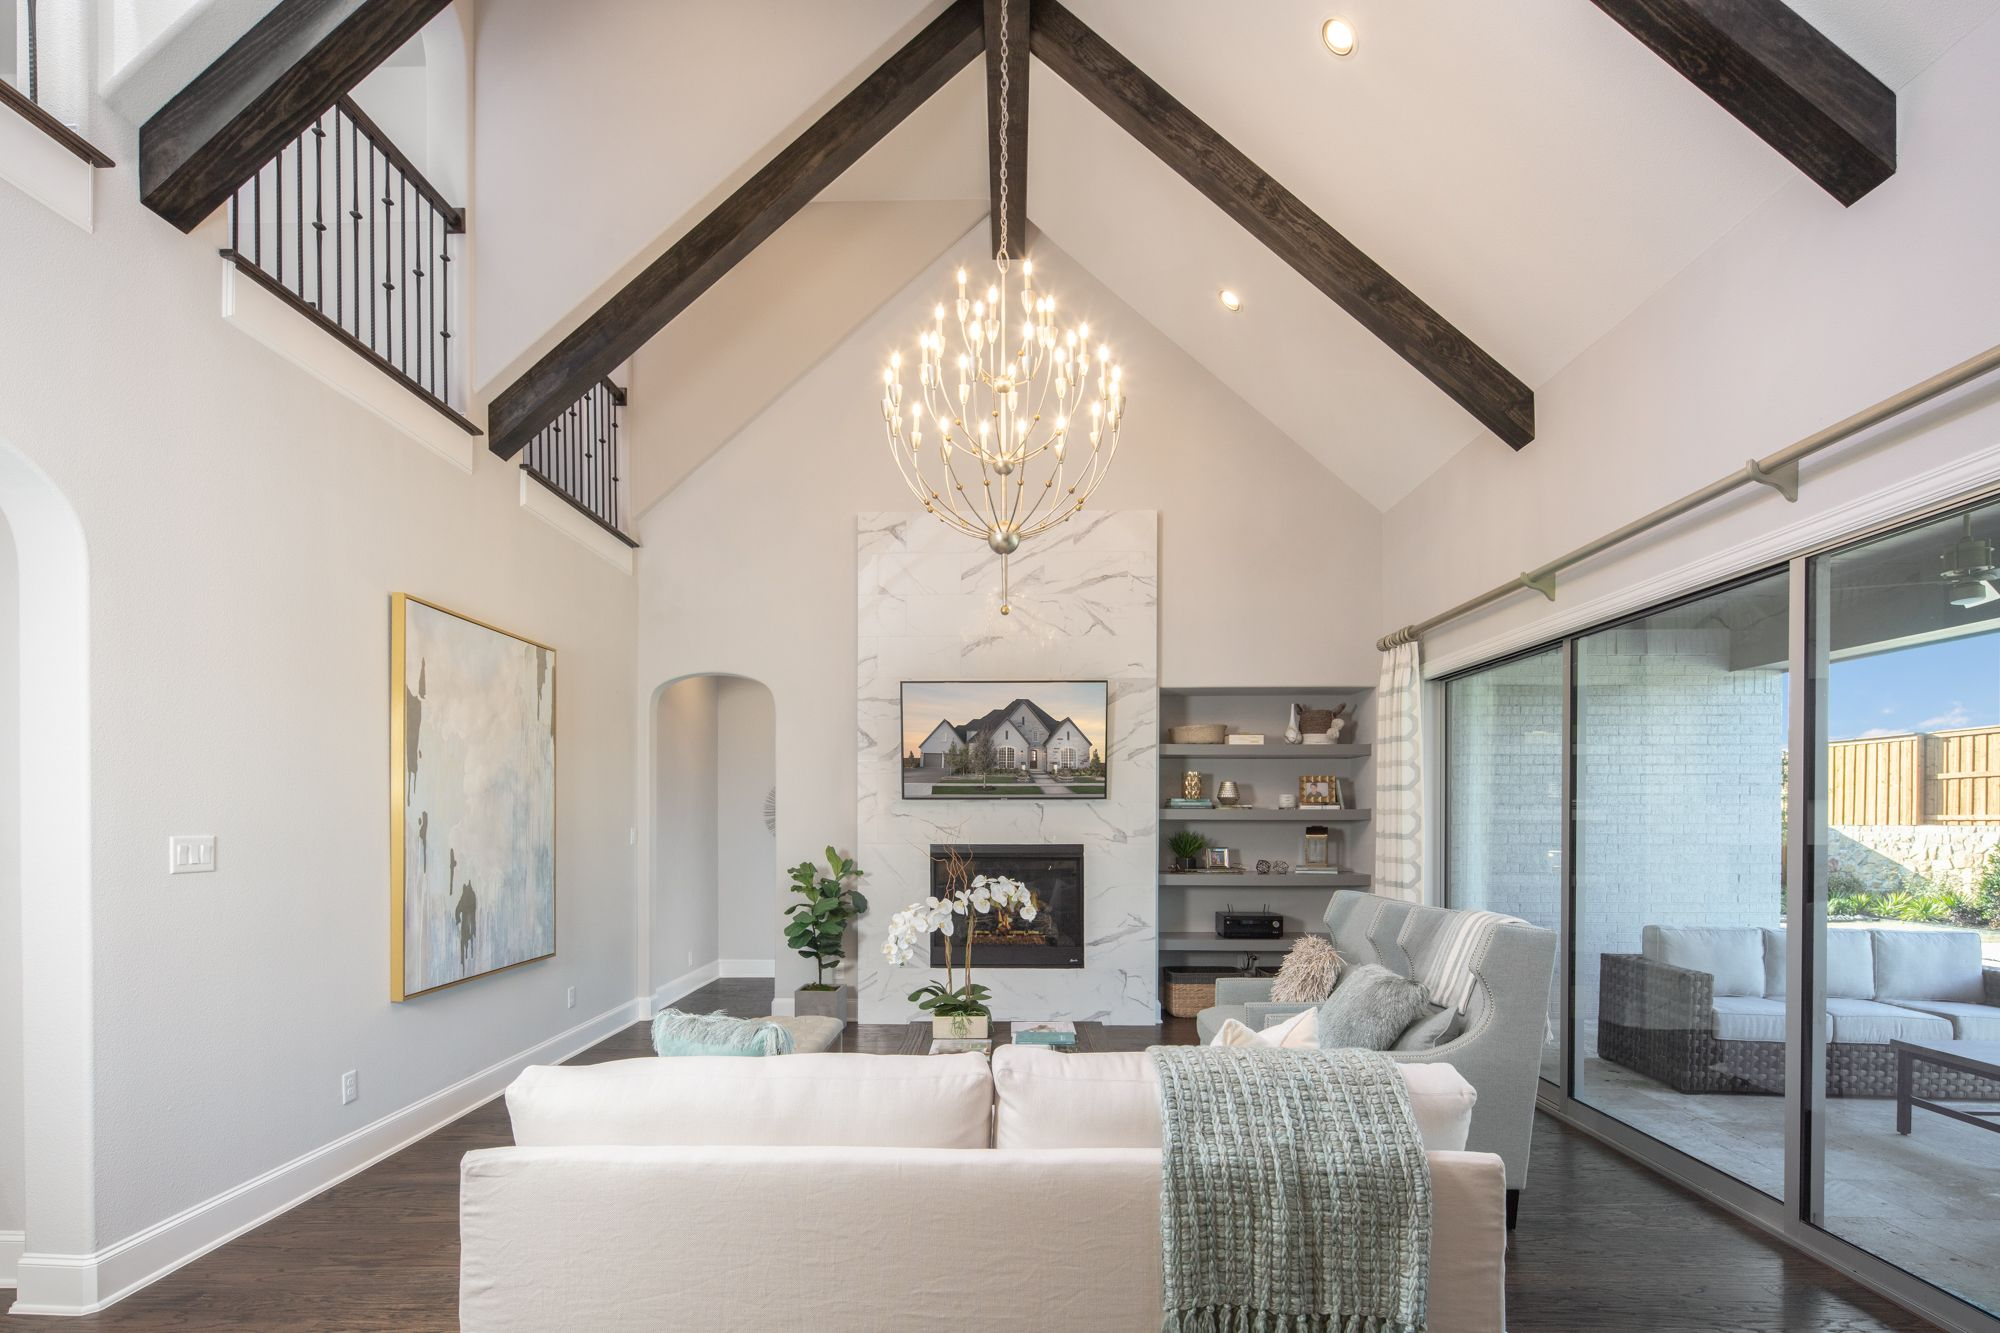 Living Area featured in the B807 By BelclaireHomes in Dallas, TX